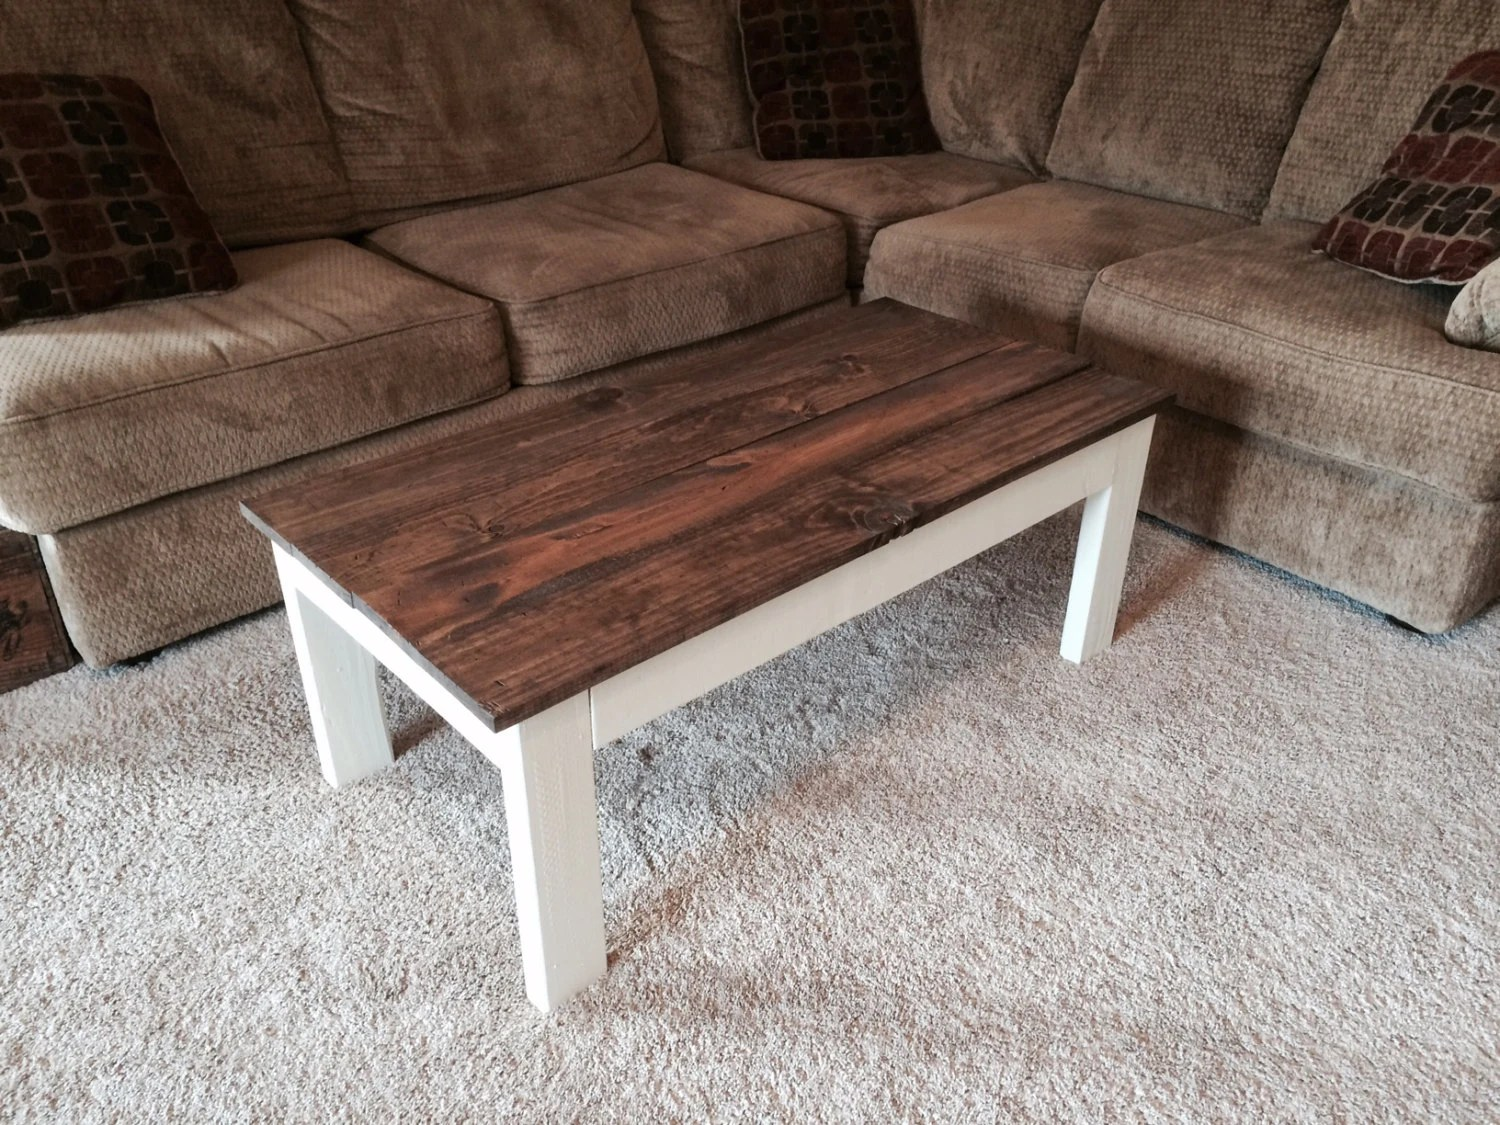 Distressed Rustic Coffee Table. Antique White Base And